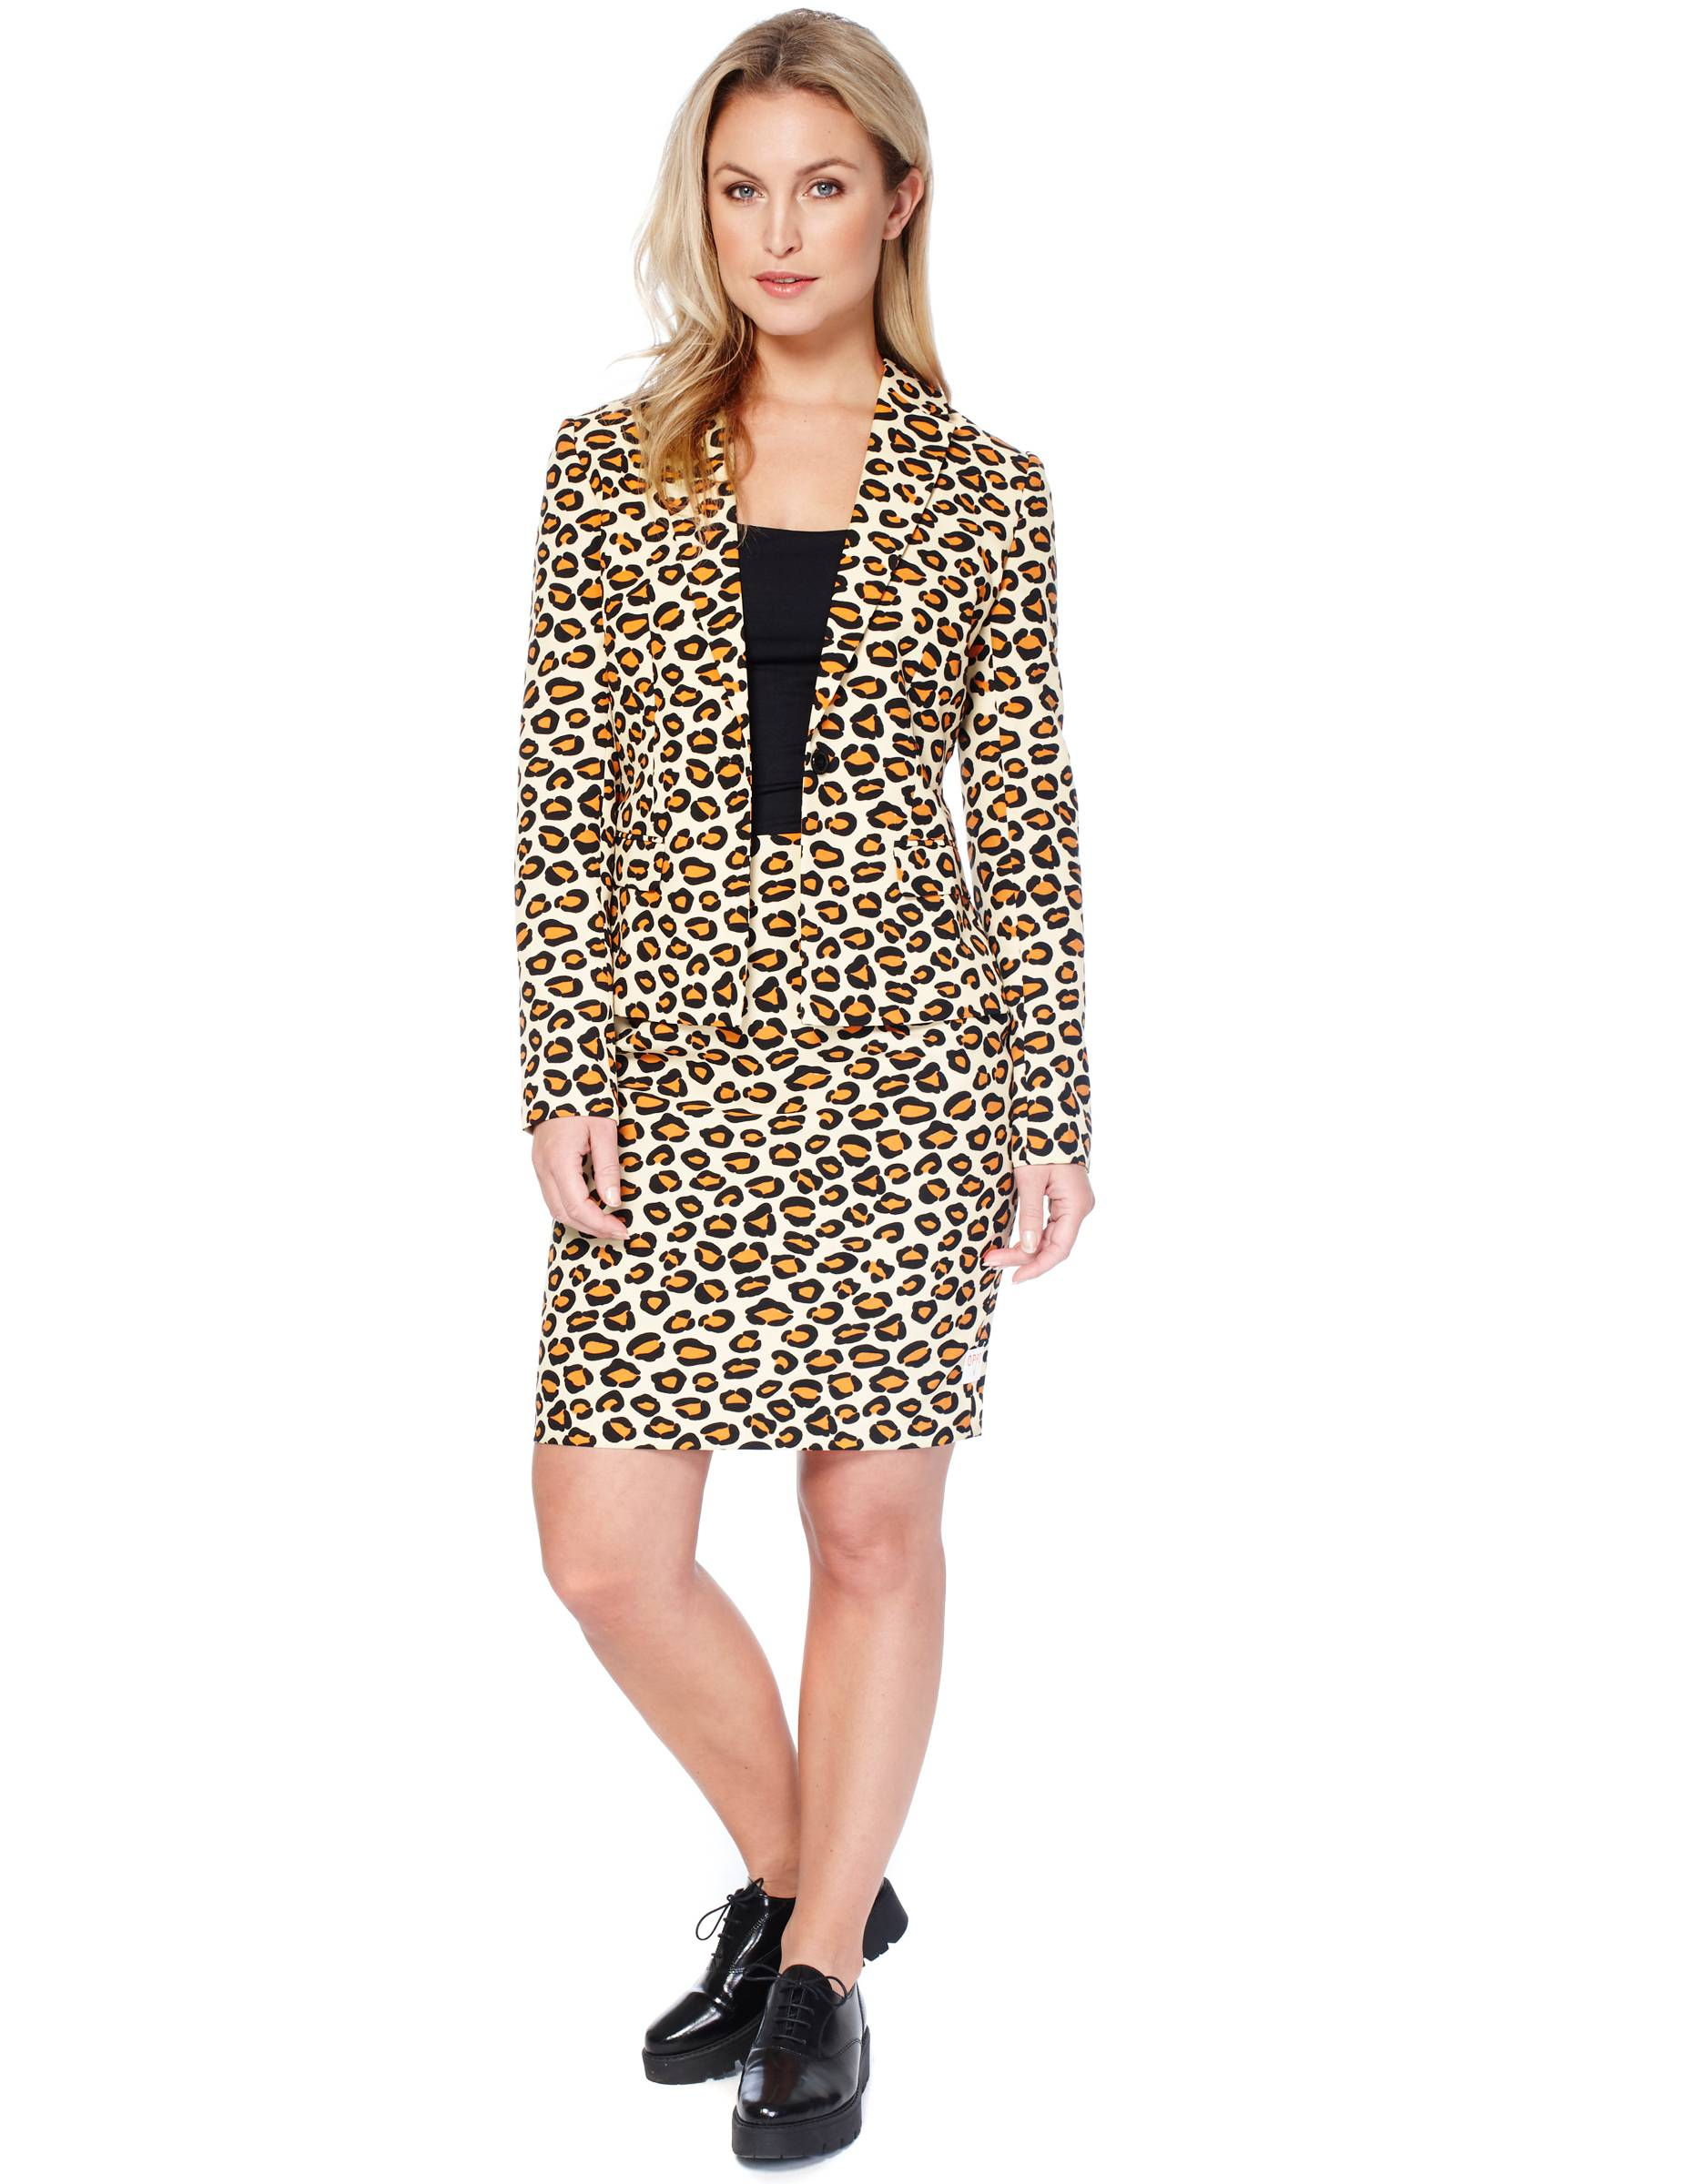 Vegaoo Costume Miss Giaguaro per donna Opposuits - S / M (38)